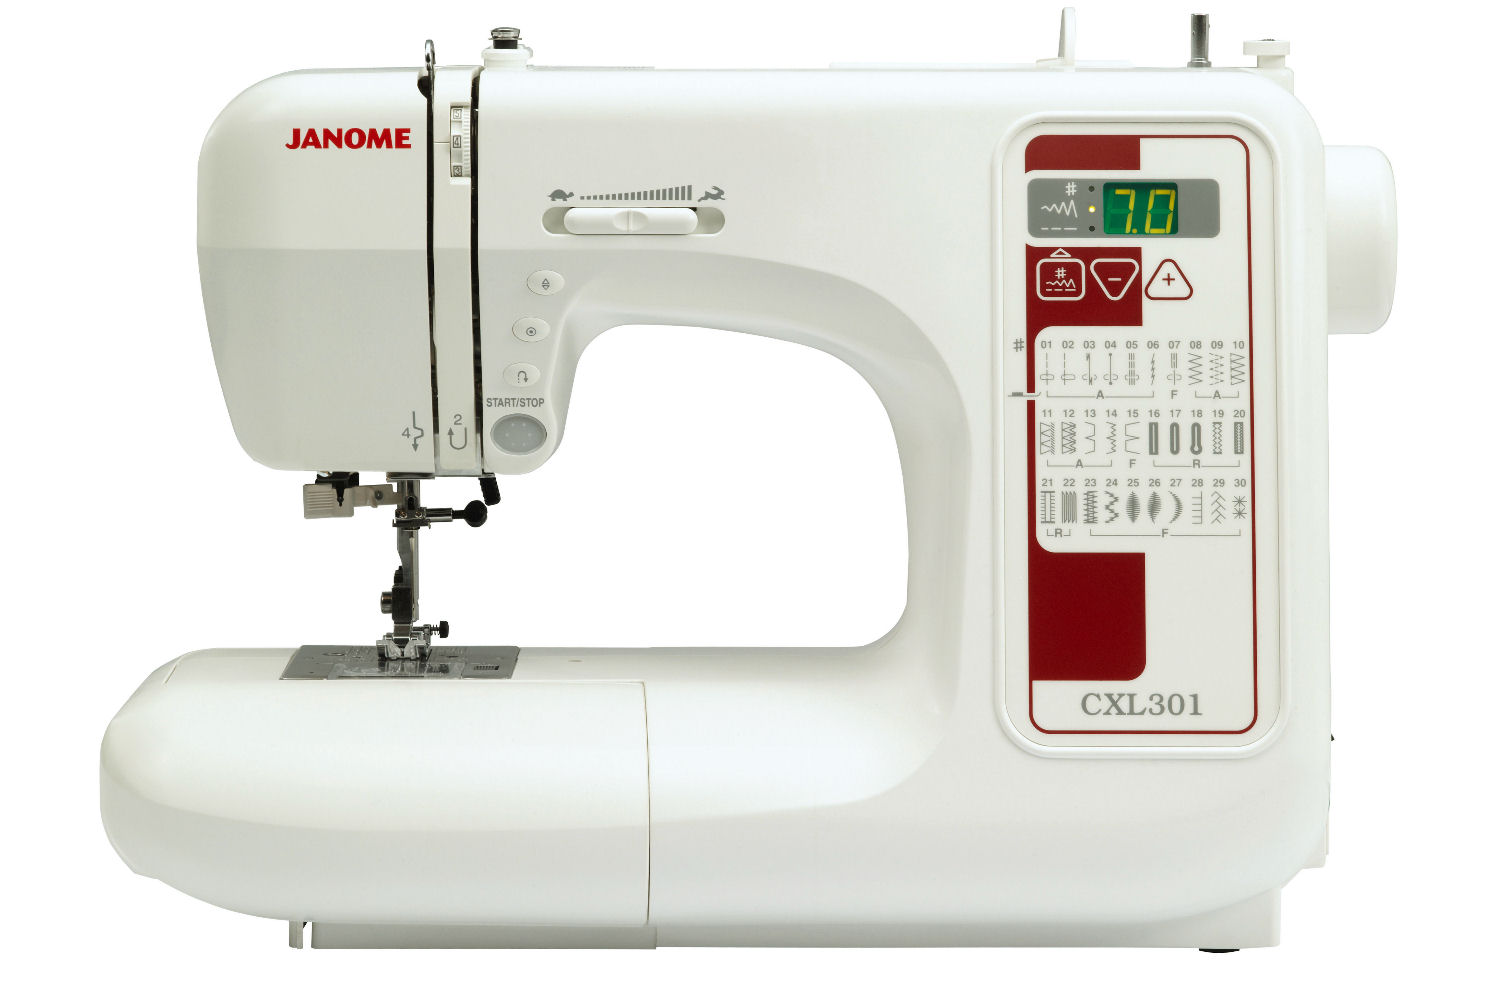 The Janome CXL301 - We have 10 of these in our studio for student use.